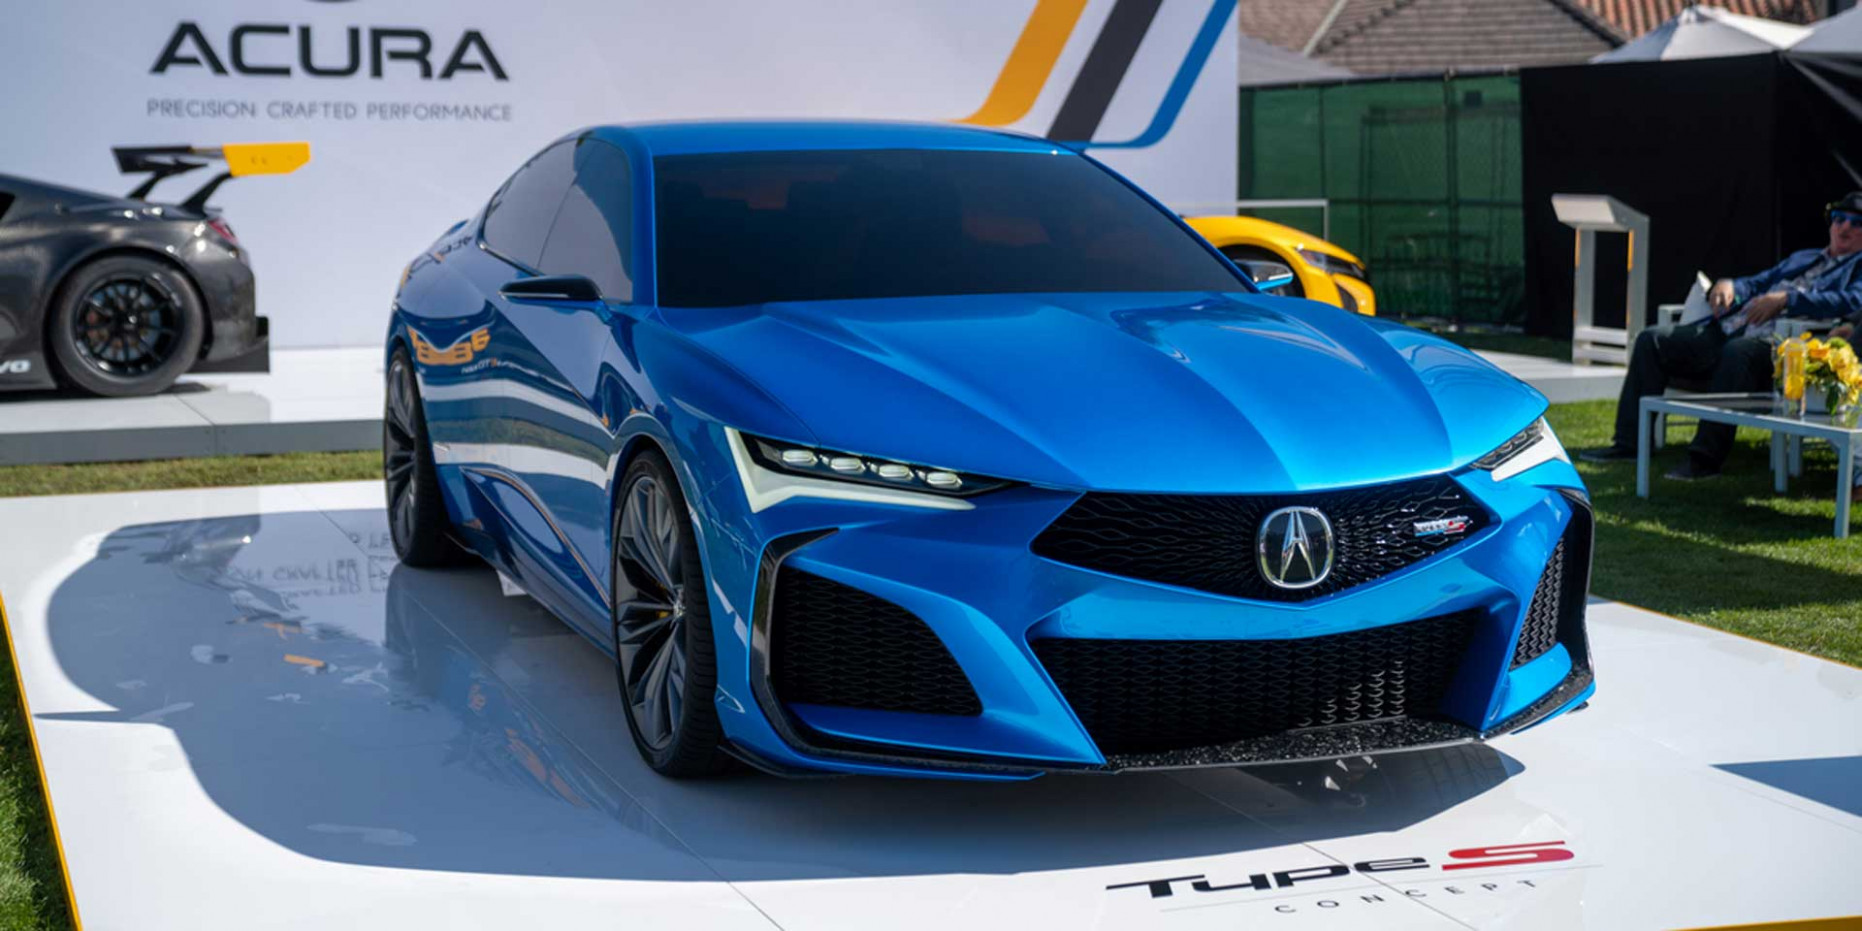 10 - Acura - Type S - Vehicles on Display | Chicago Auto Show